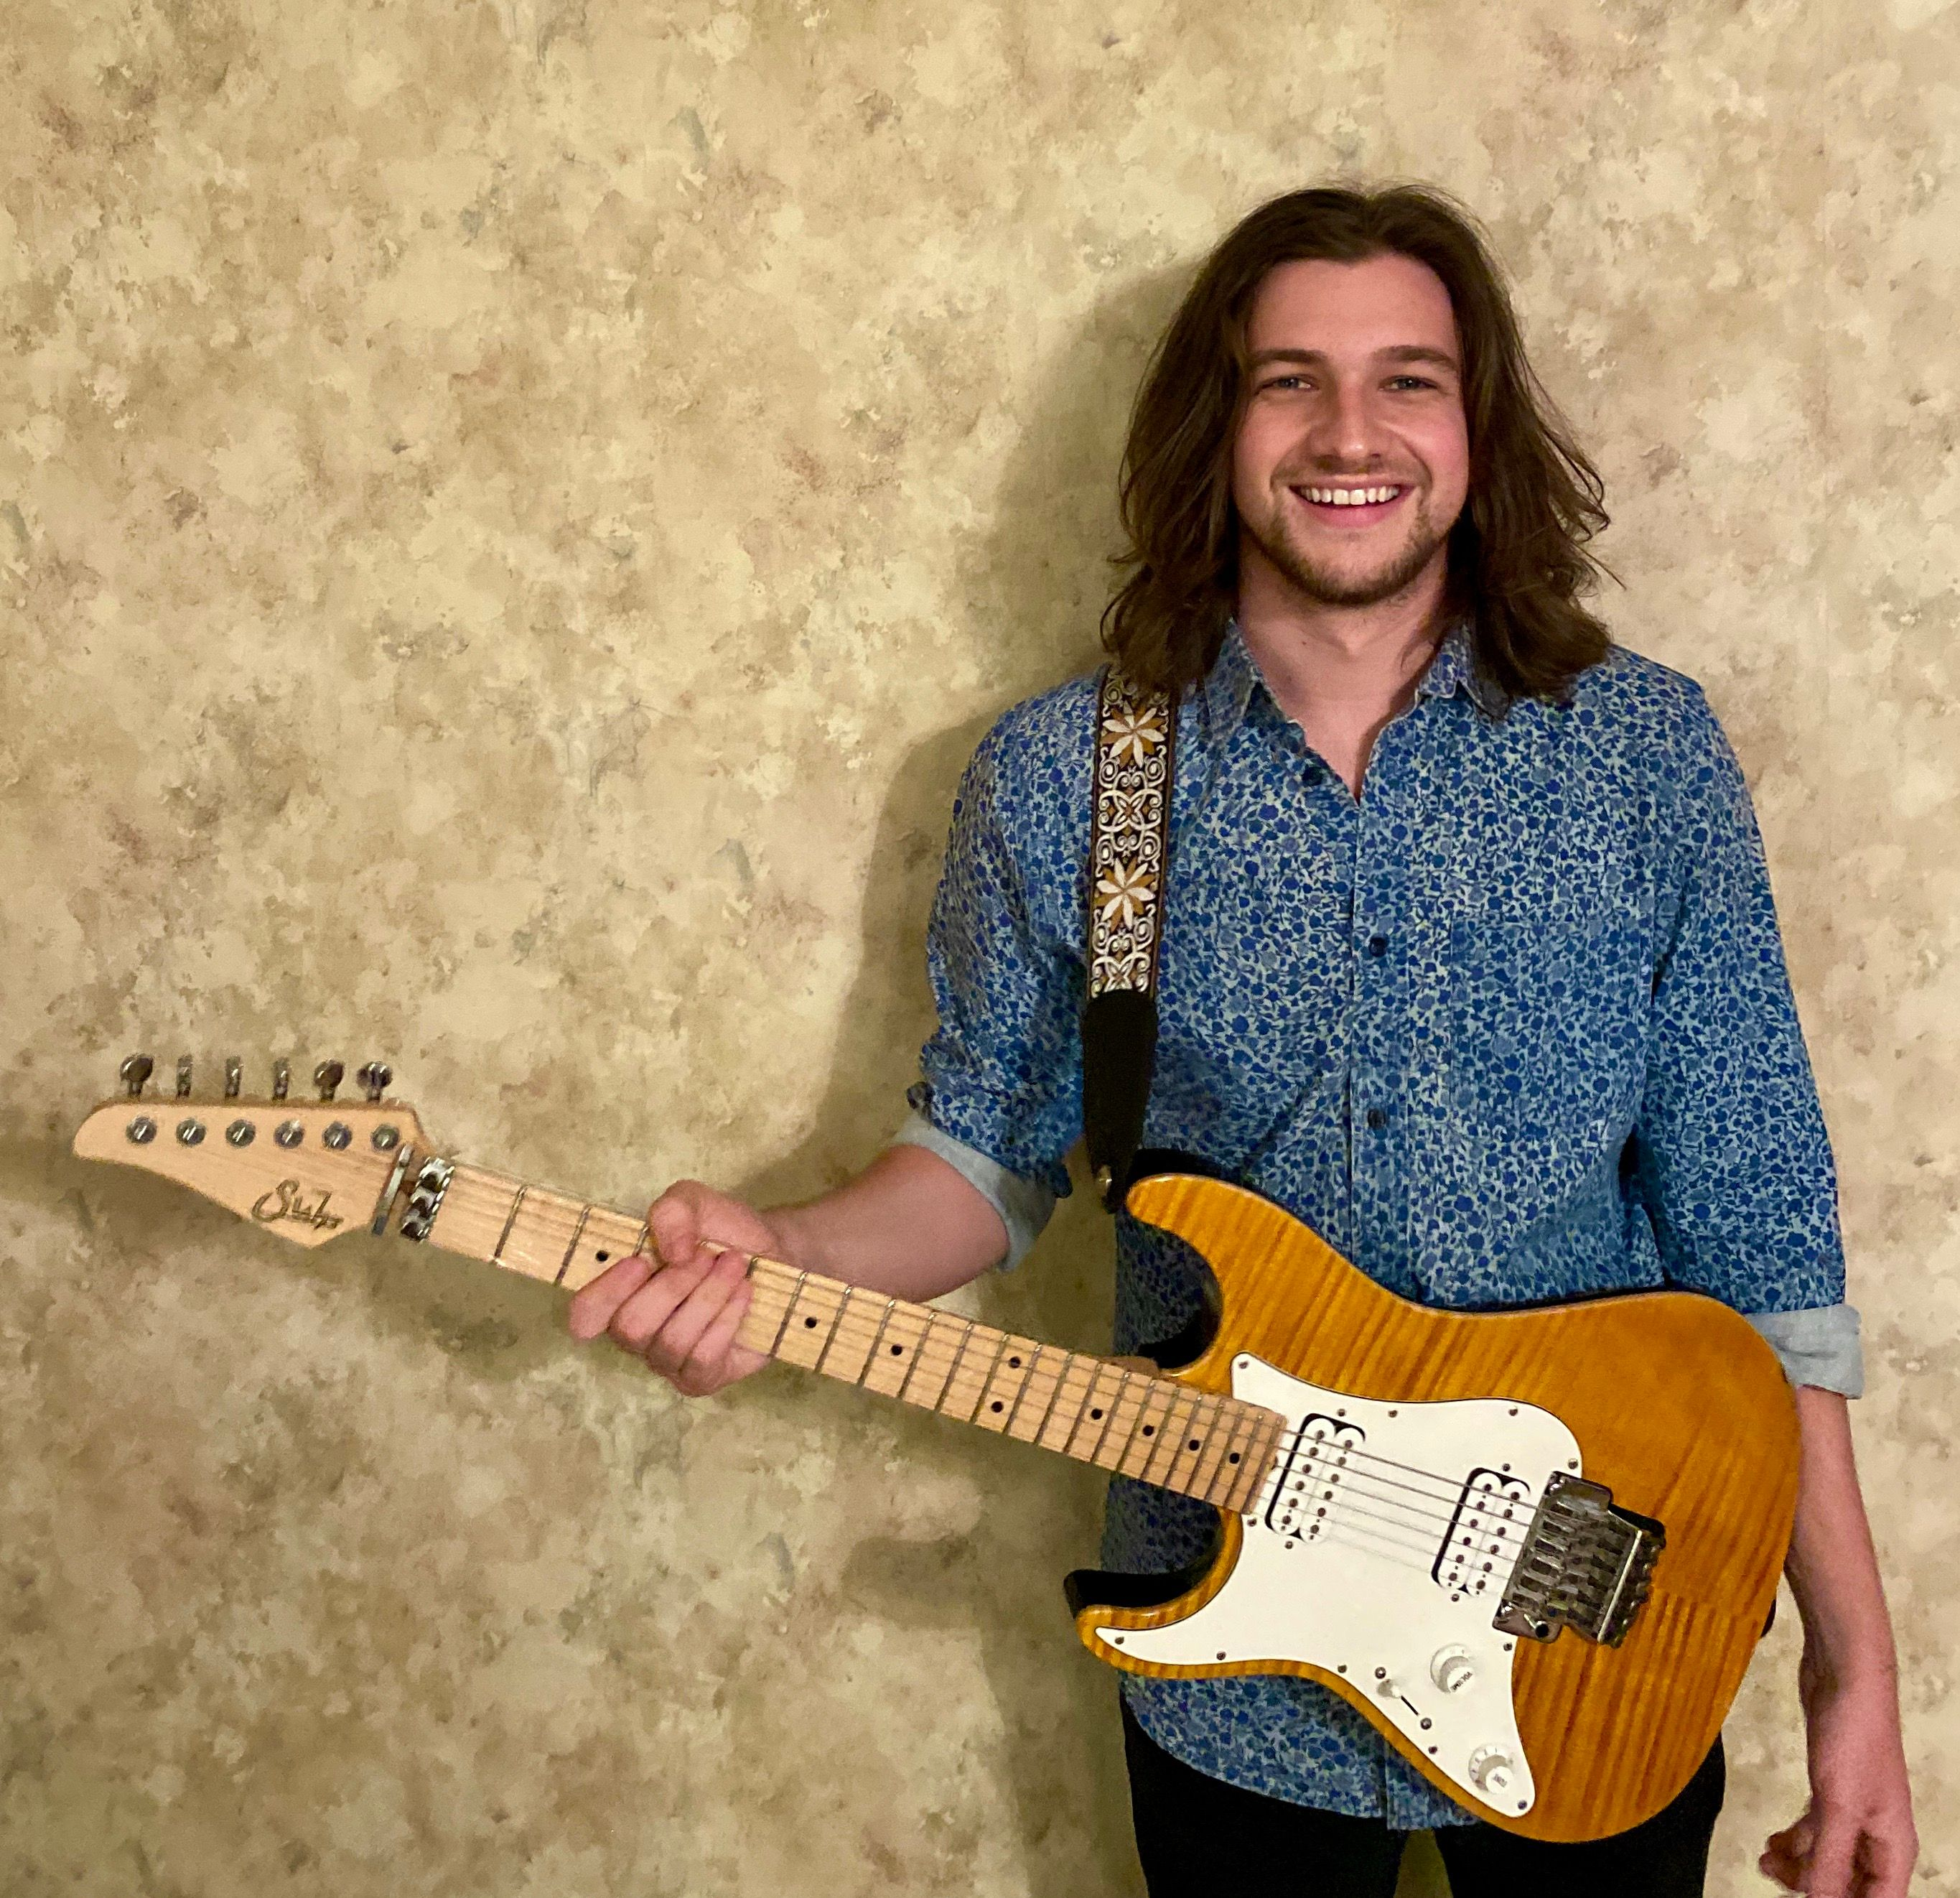 Eminence Ensemble Announces Arrival of Guitarist Dylan Gleit and Departure of Guitarist Taylor Frederick